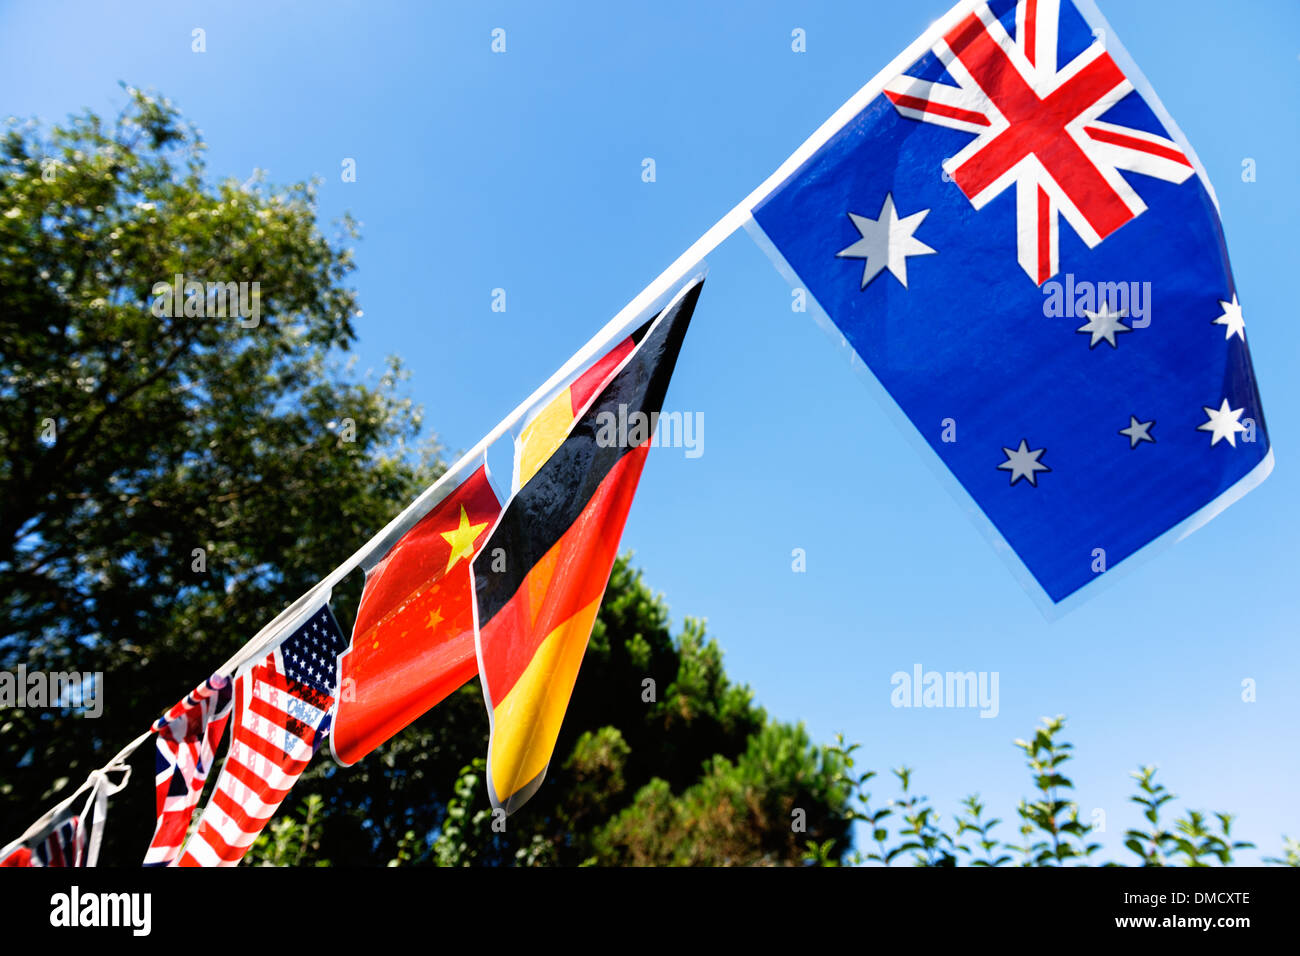 Multinational flag bunting at a garden party. - Stock Image